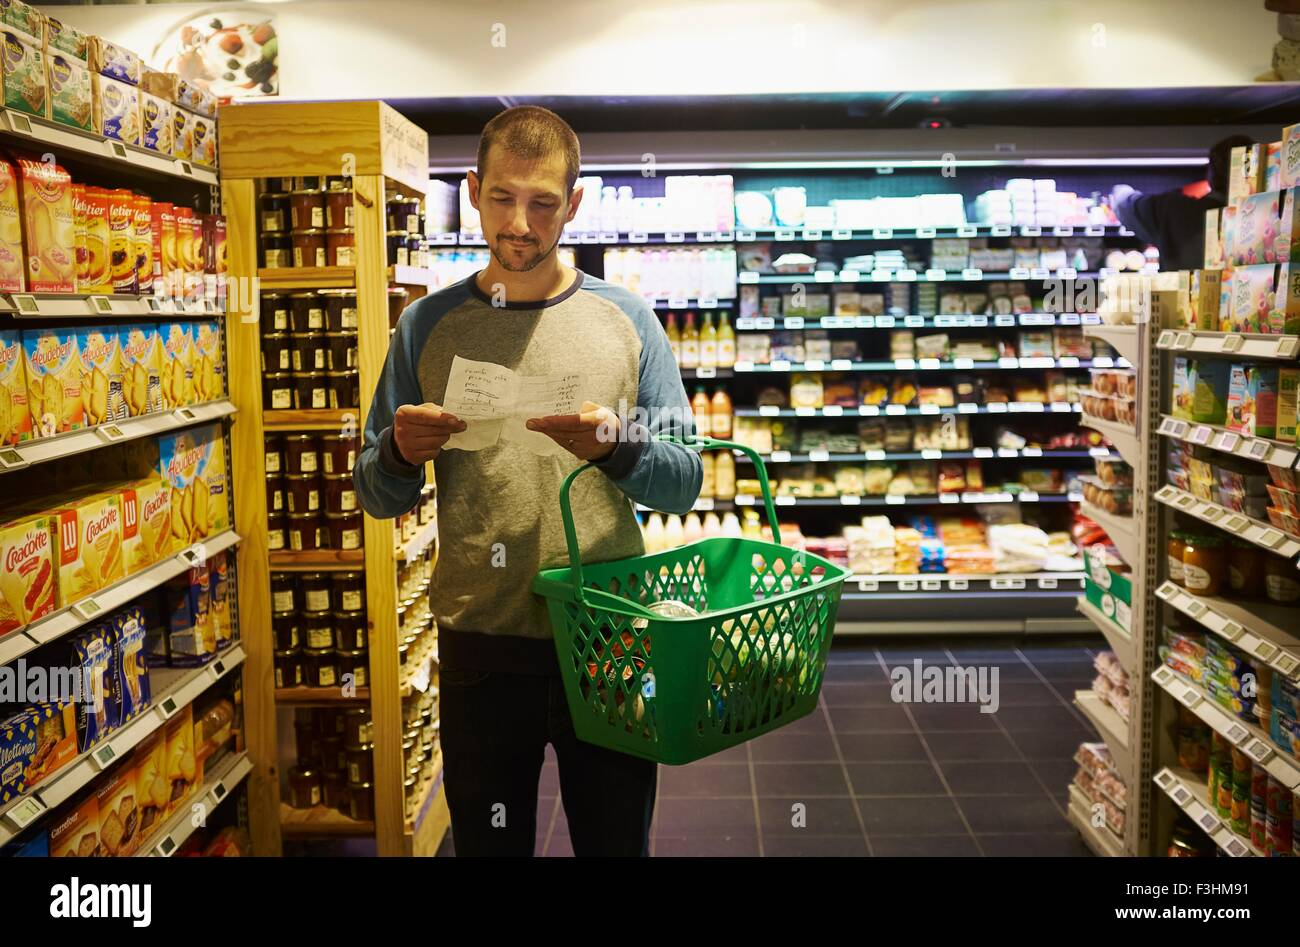 Man shopping in supermarket Photo Stock